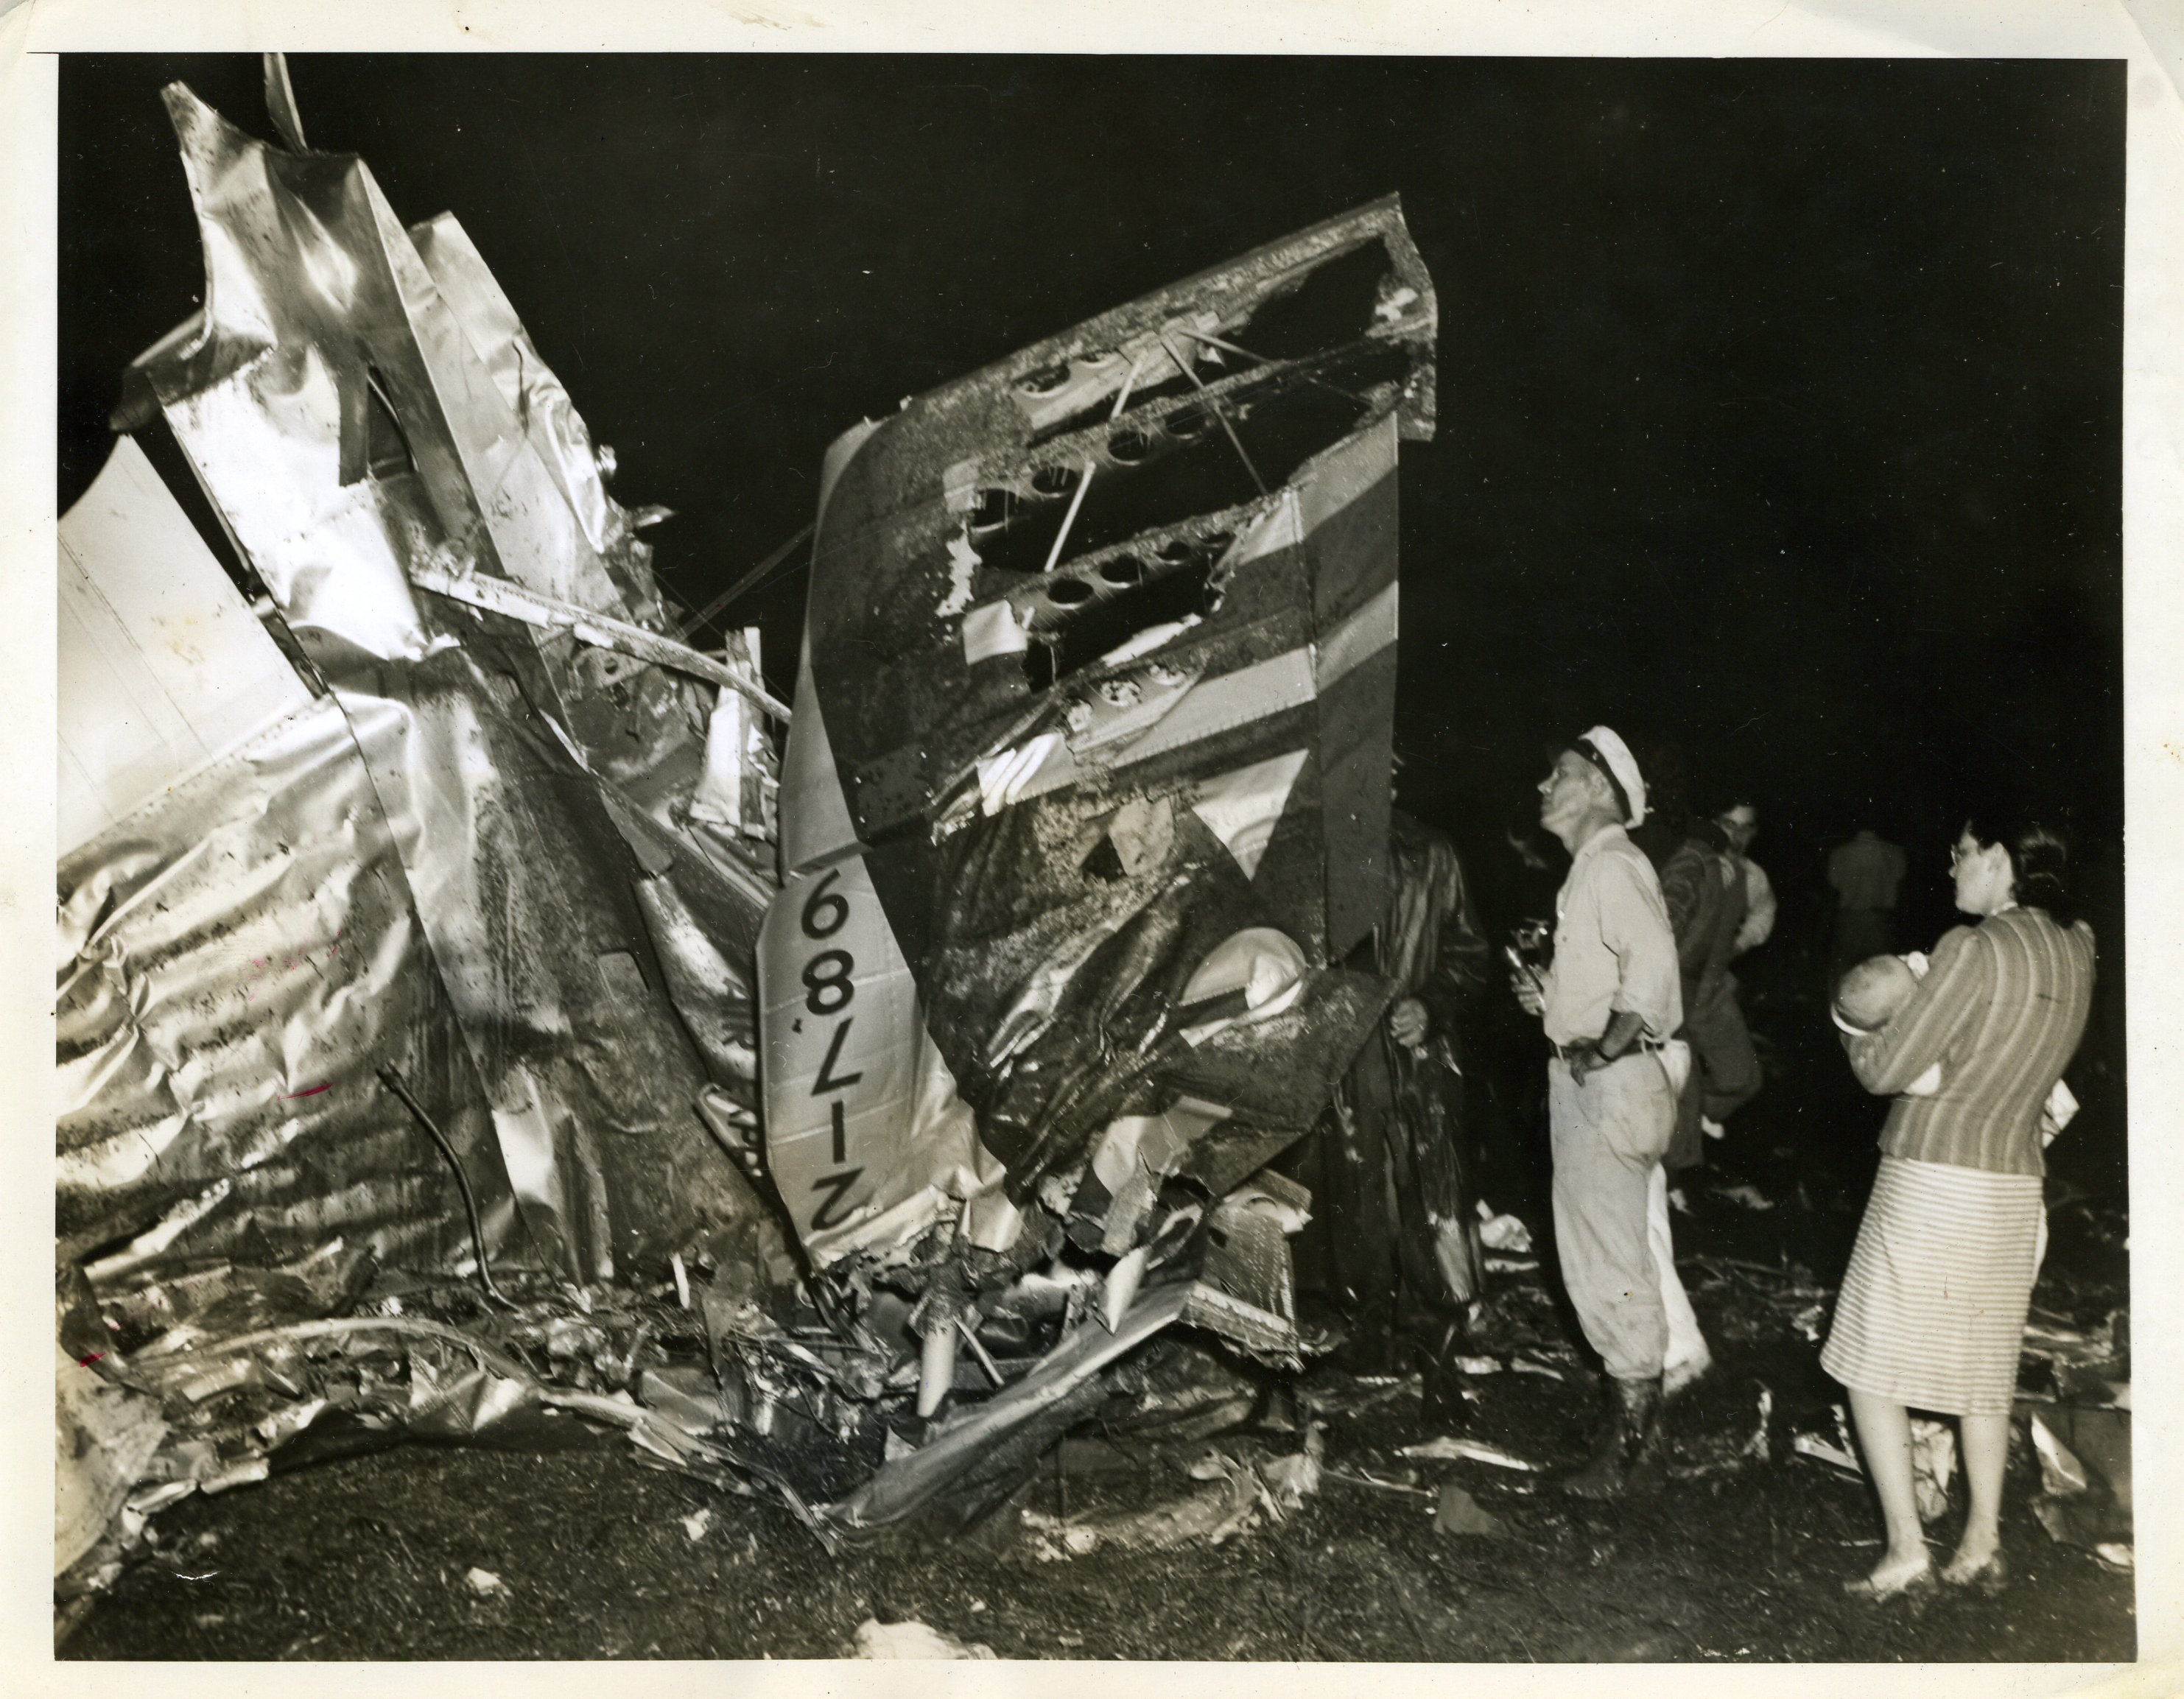 1940-lovettsville-air-disaster-international-news-photos-s915600_front